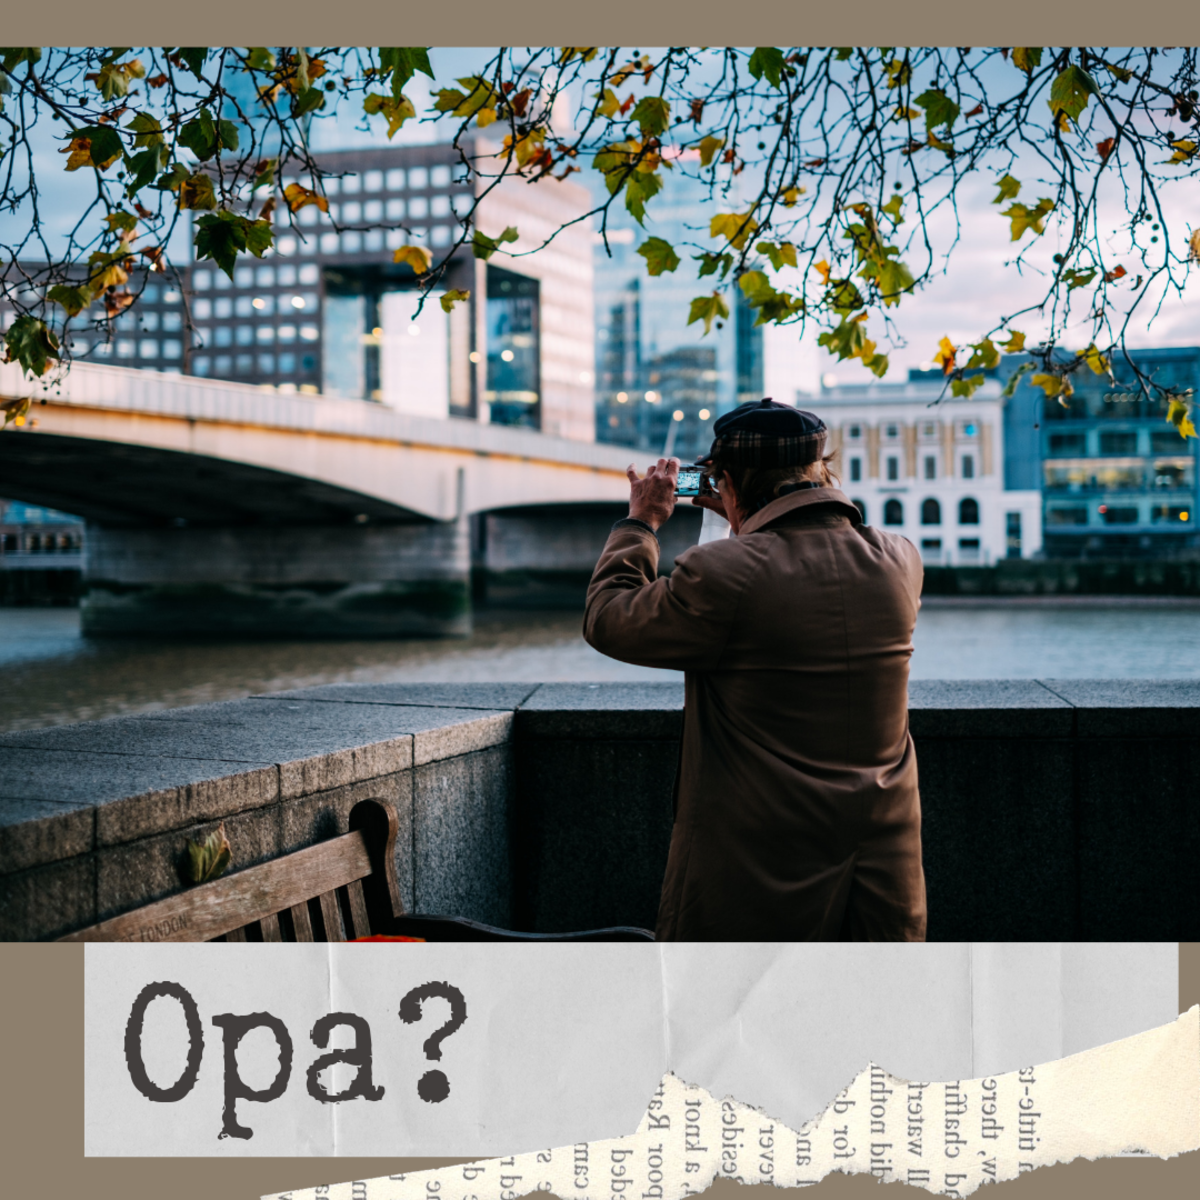 Are you an Opa?